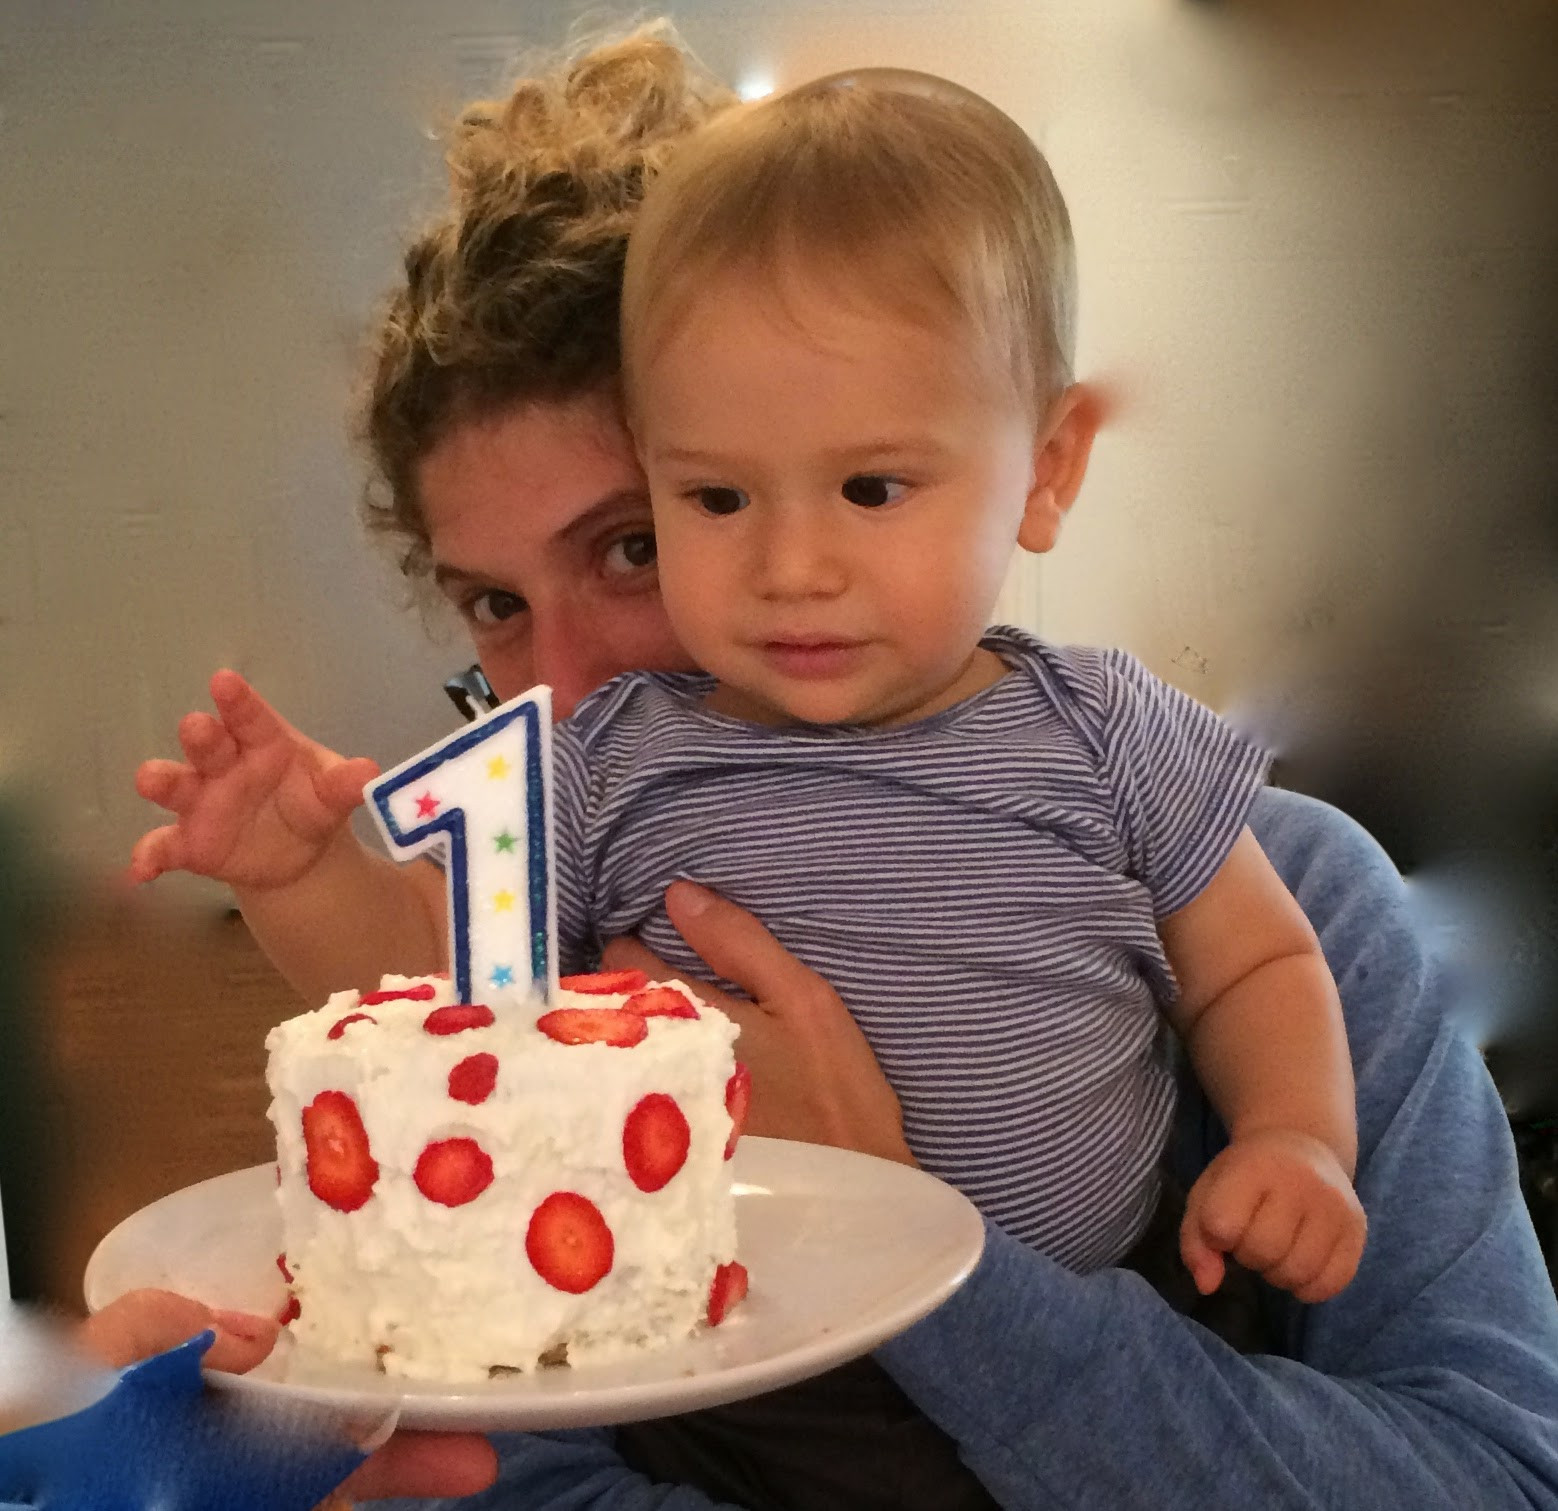 Healthy Baby First Birthday Cake  MUCH ADO ABOUT STUFFING Healthy sugar free additive